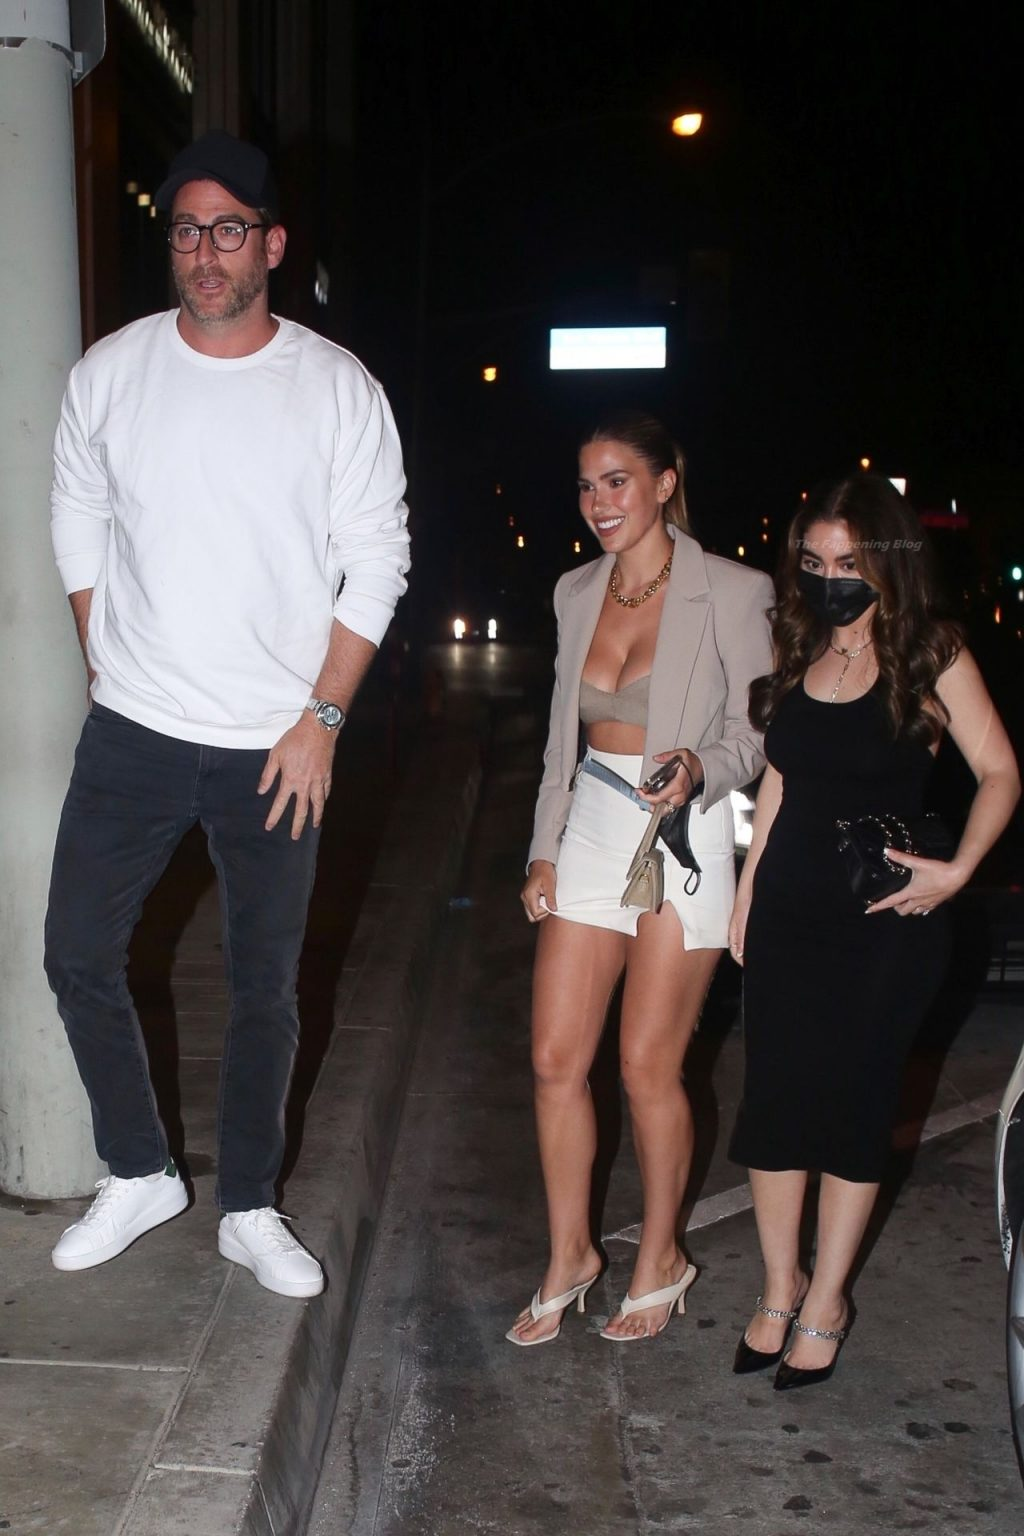 Kara Del Toro Puts on a Busty Display While Spotted Out to Dinner (47 Photos)